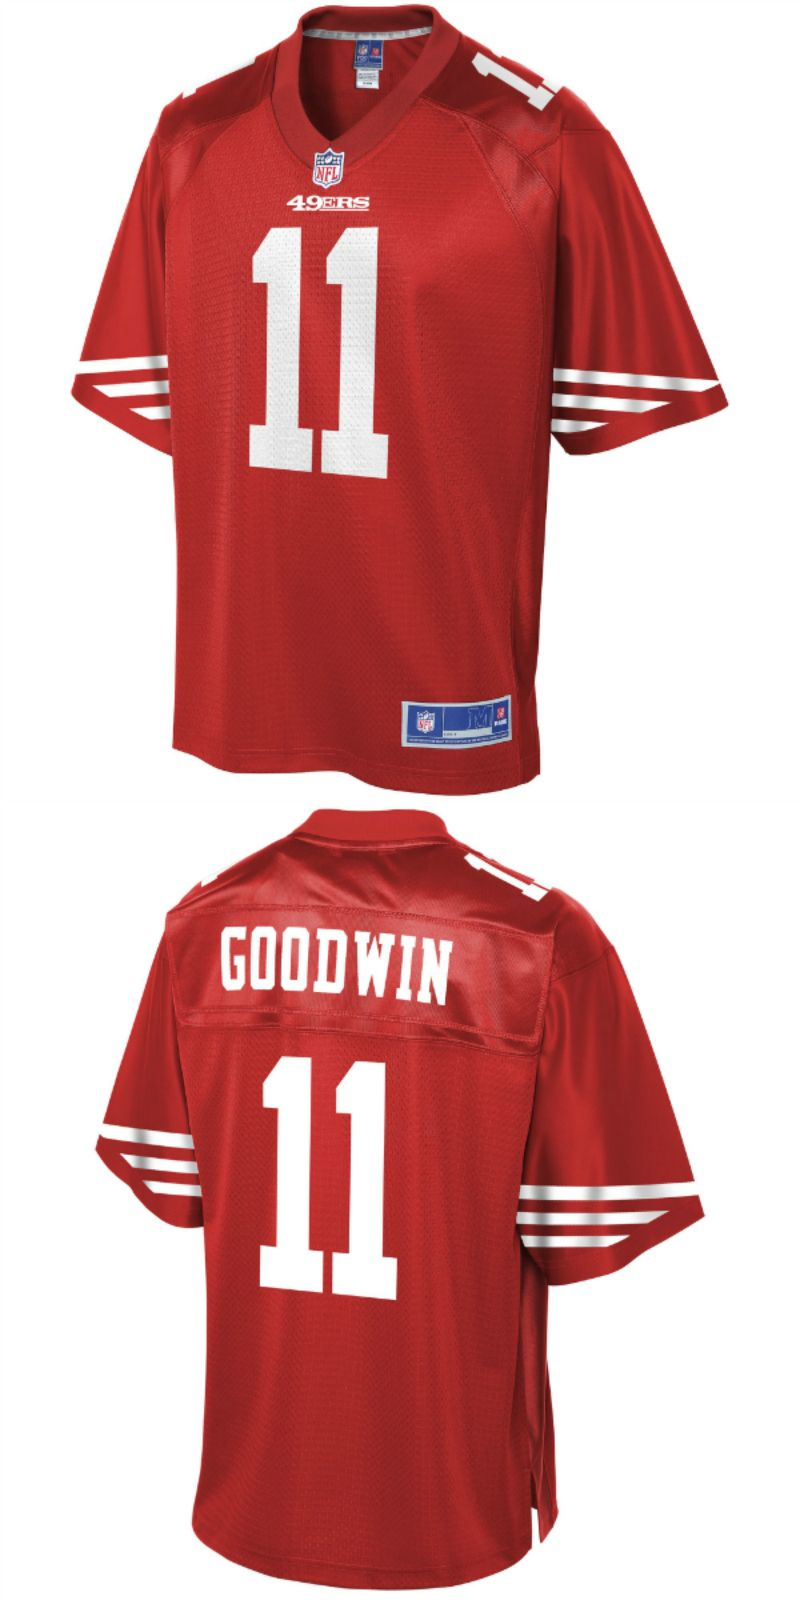 size 40 a66a4 1f619 UP TO 70% OFF. Marquise Goodwin San Francisco 49ers NFL Pro ...